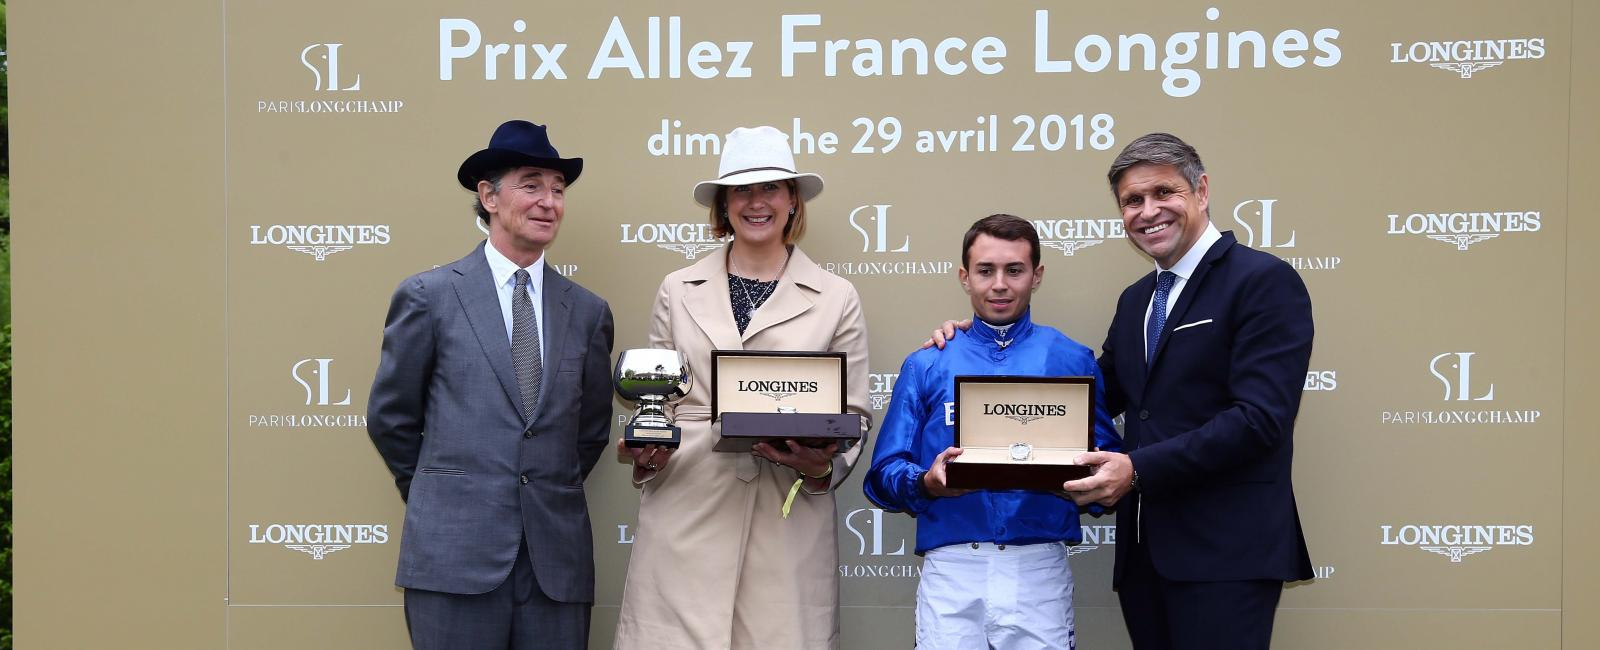 Longines; ParisLongchamp; Official Partner